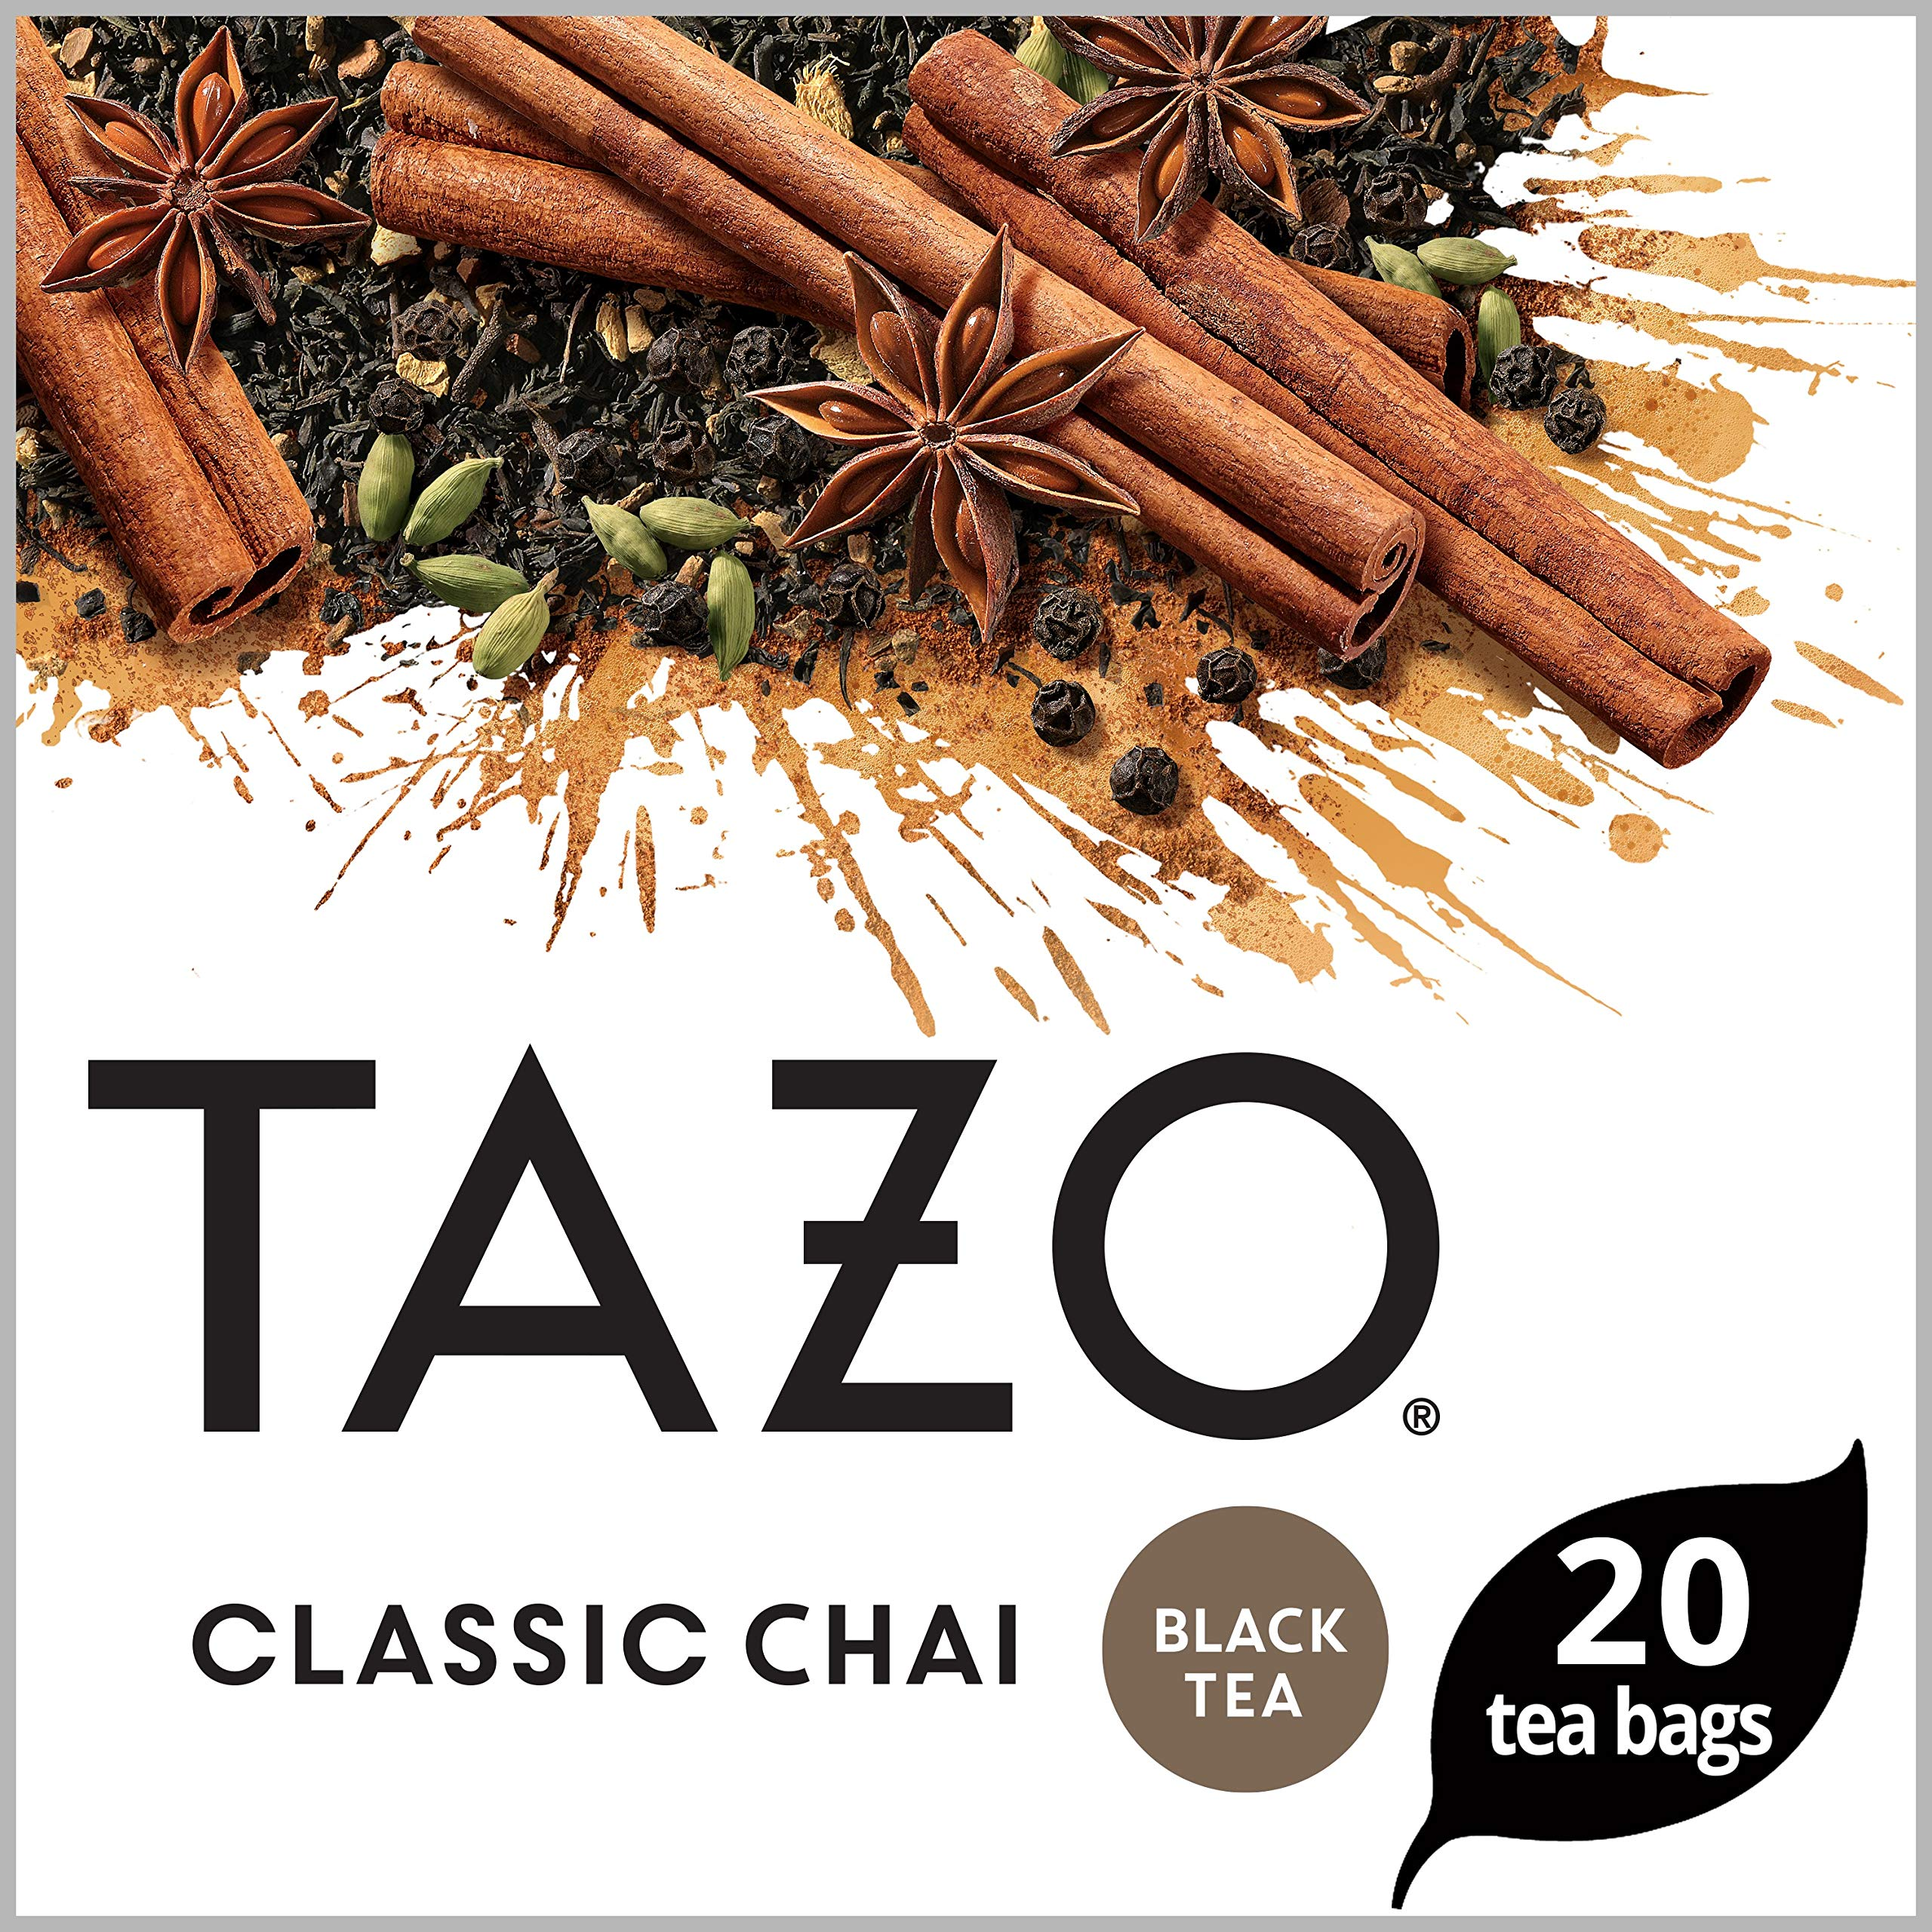 Tazo Black tea for a delightful cup of chai Classic Chai serve hot or iced 20 count, Pack of 6 (Packaging may vary) by Tazo